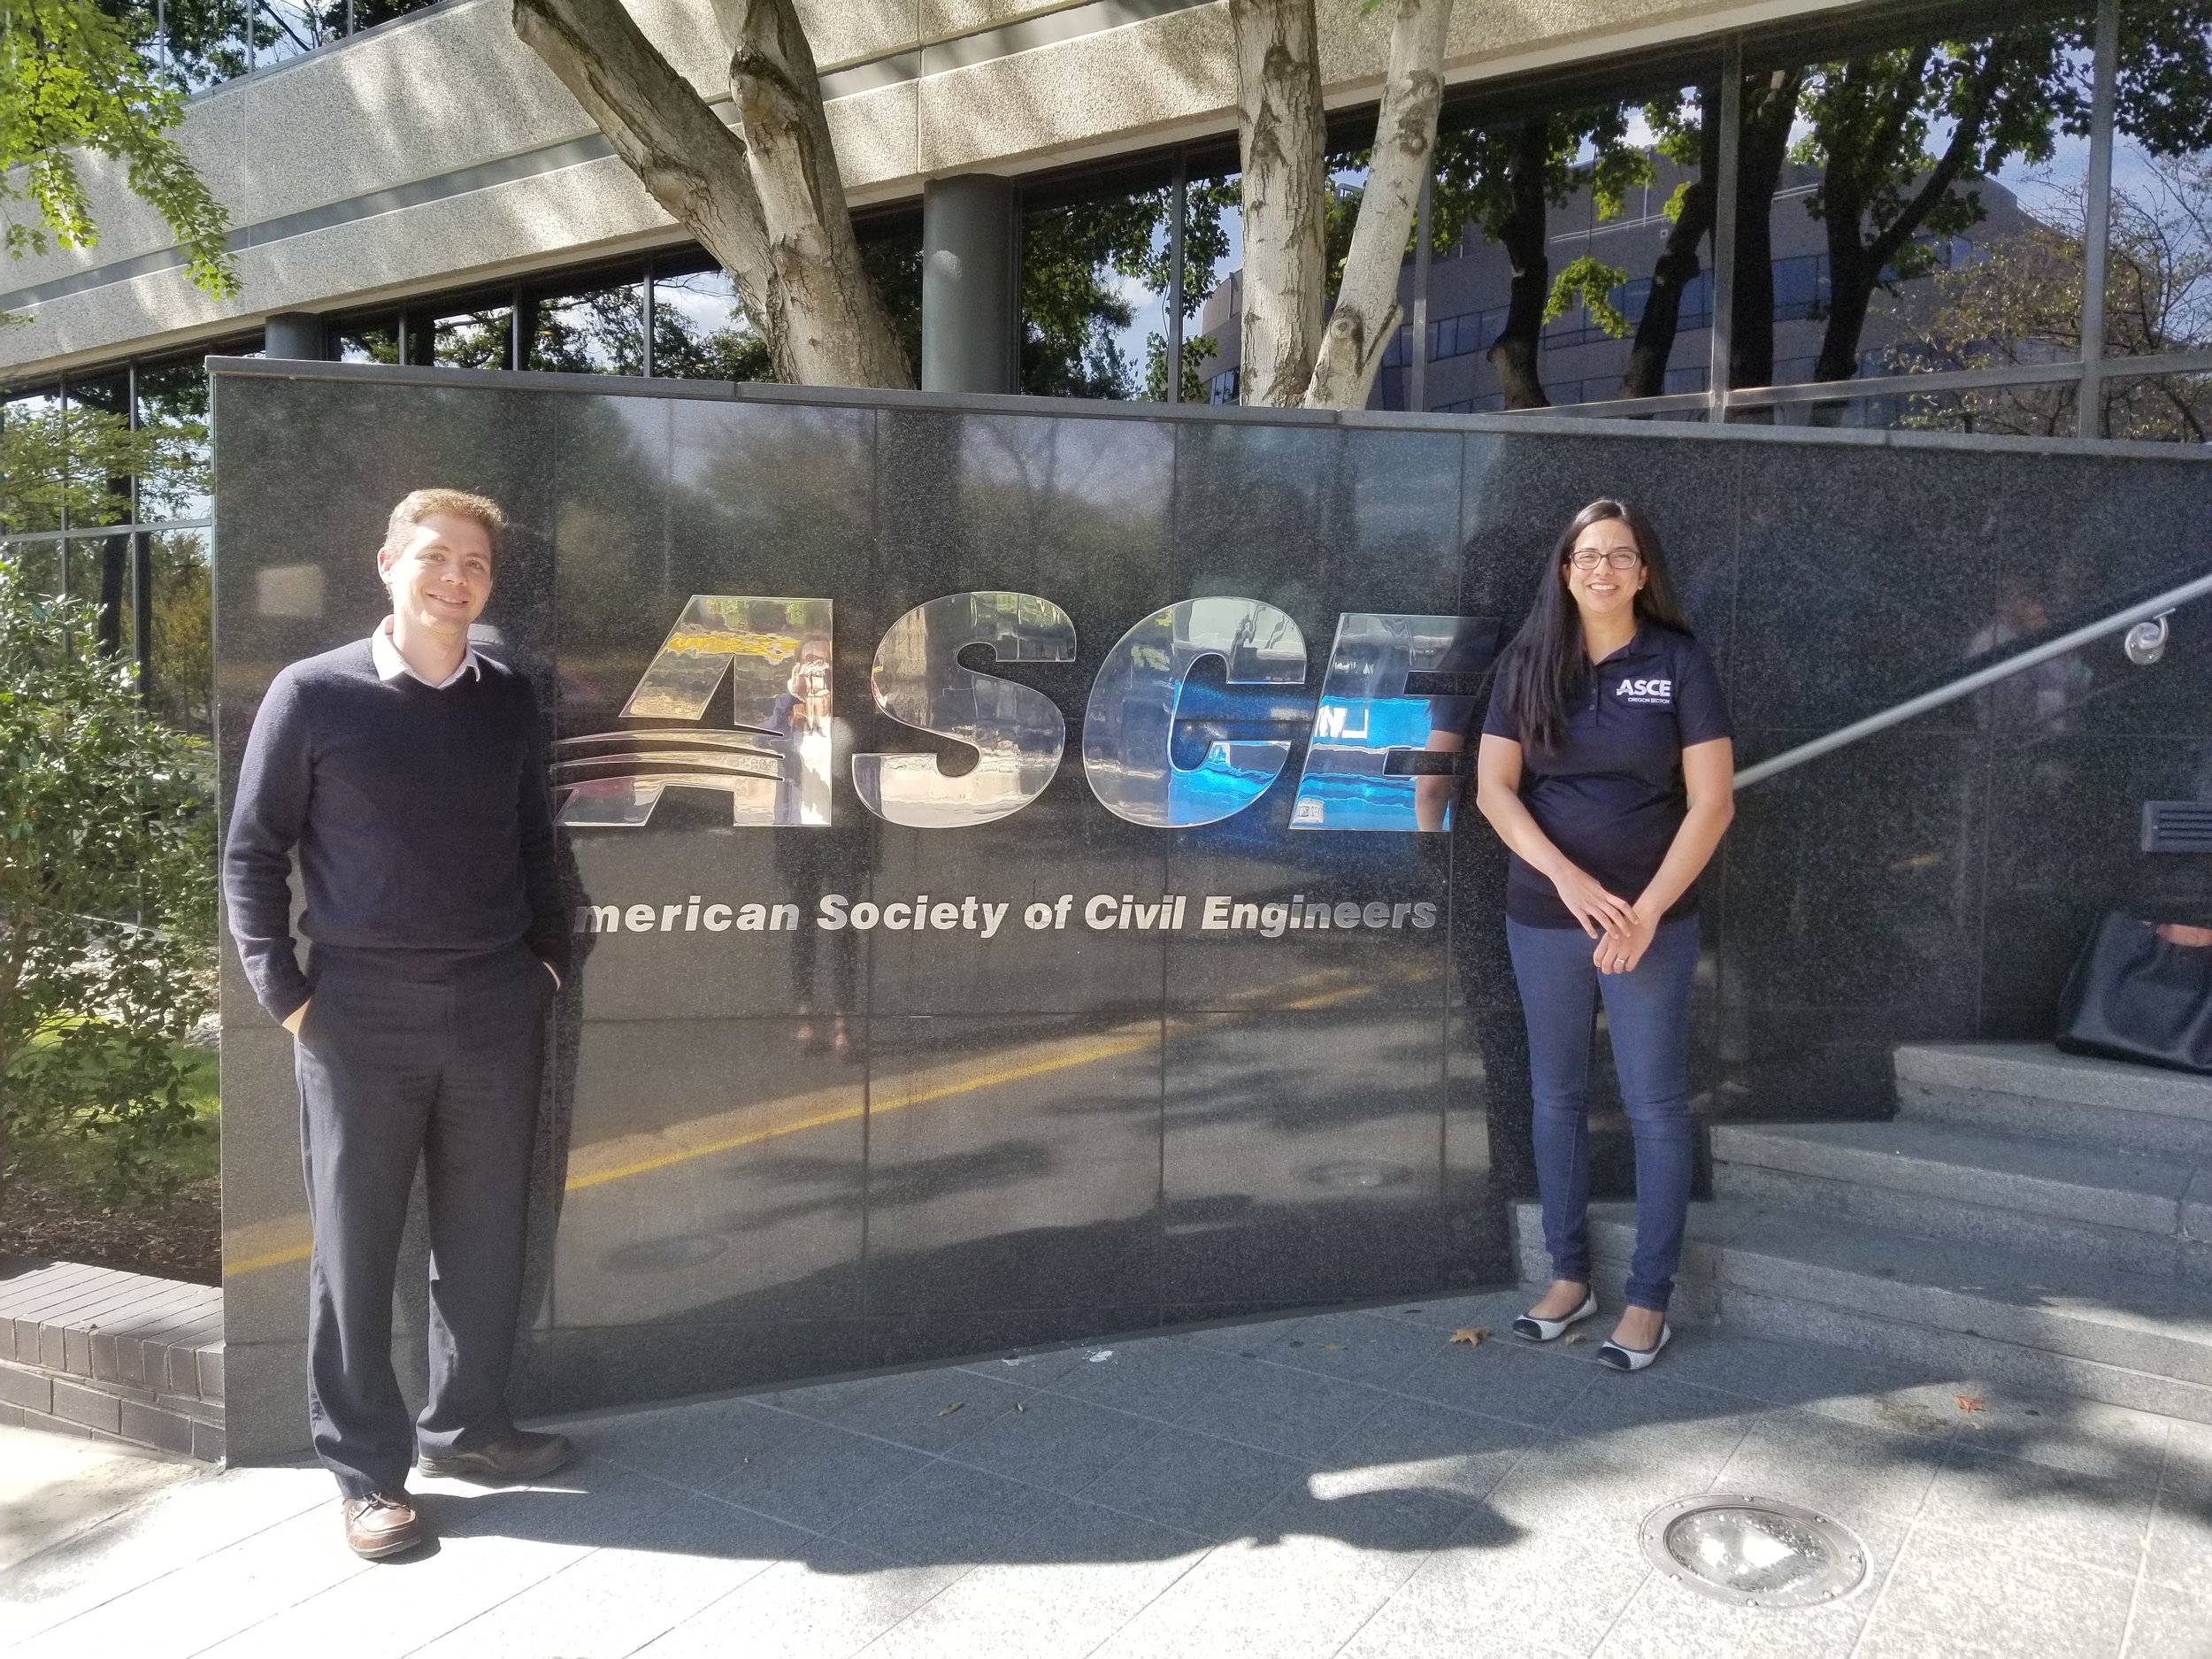 2019 -2020 ASCE Oregon Section President Bahaar Taylor (right) and President-Elect Josh Goodall (right)